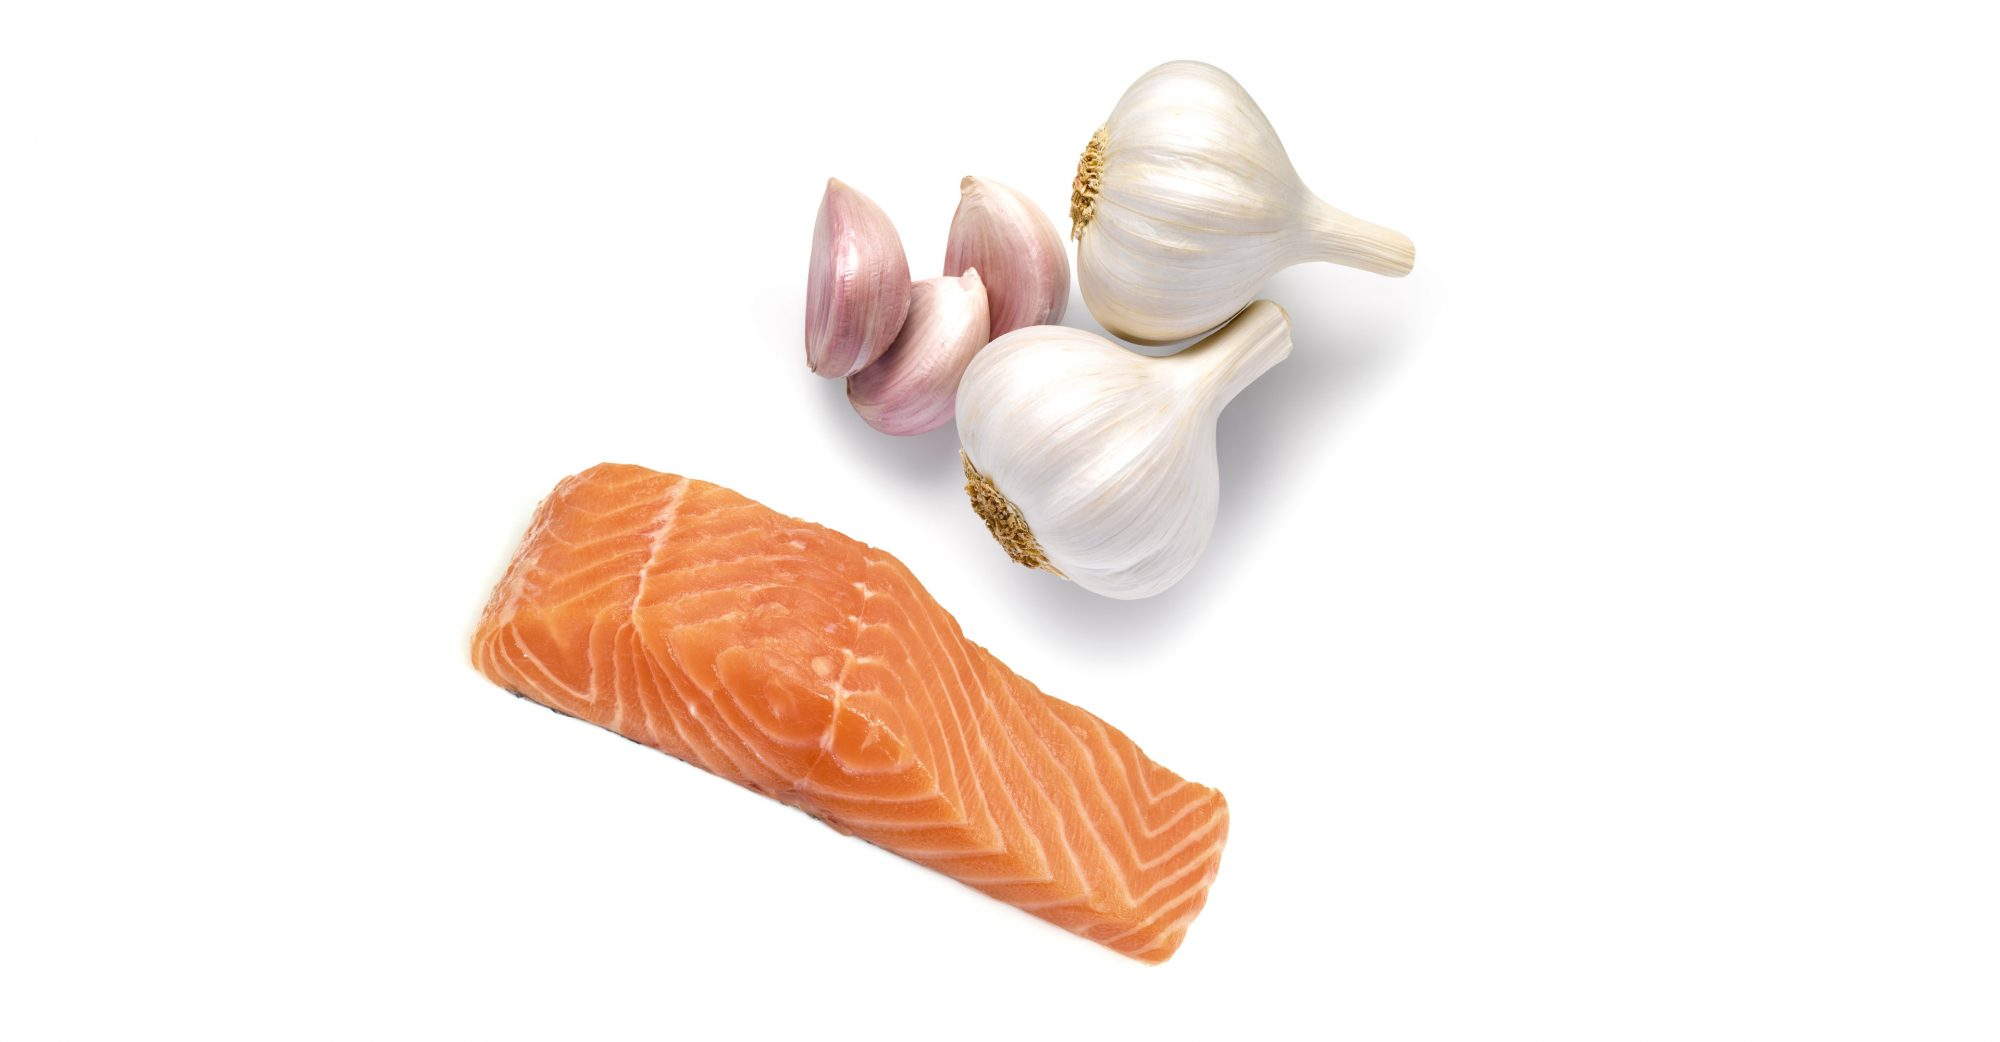 Garlic + salmon